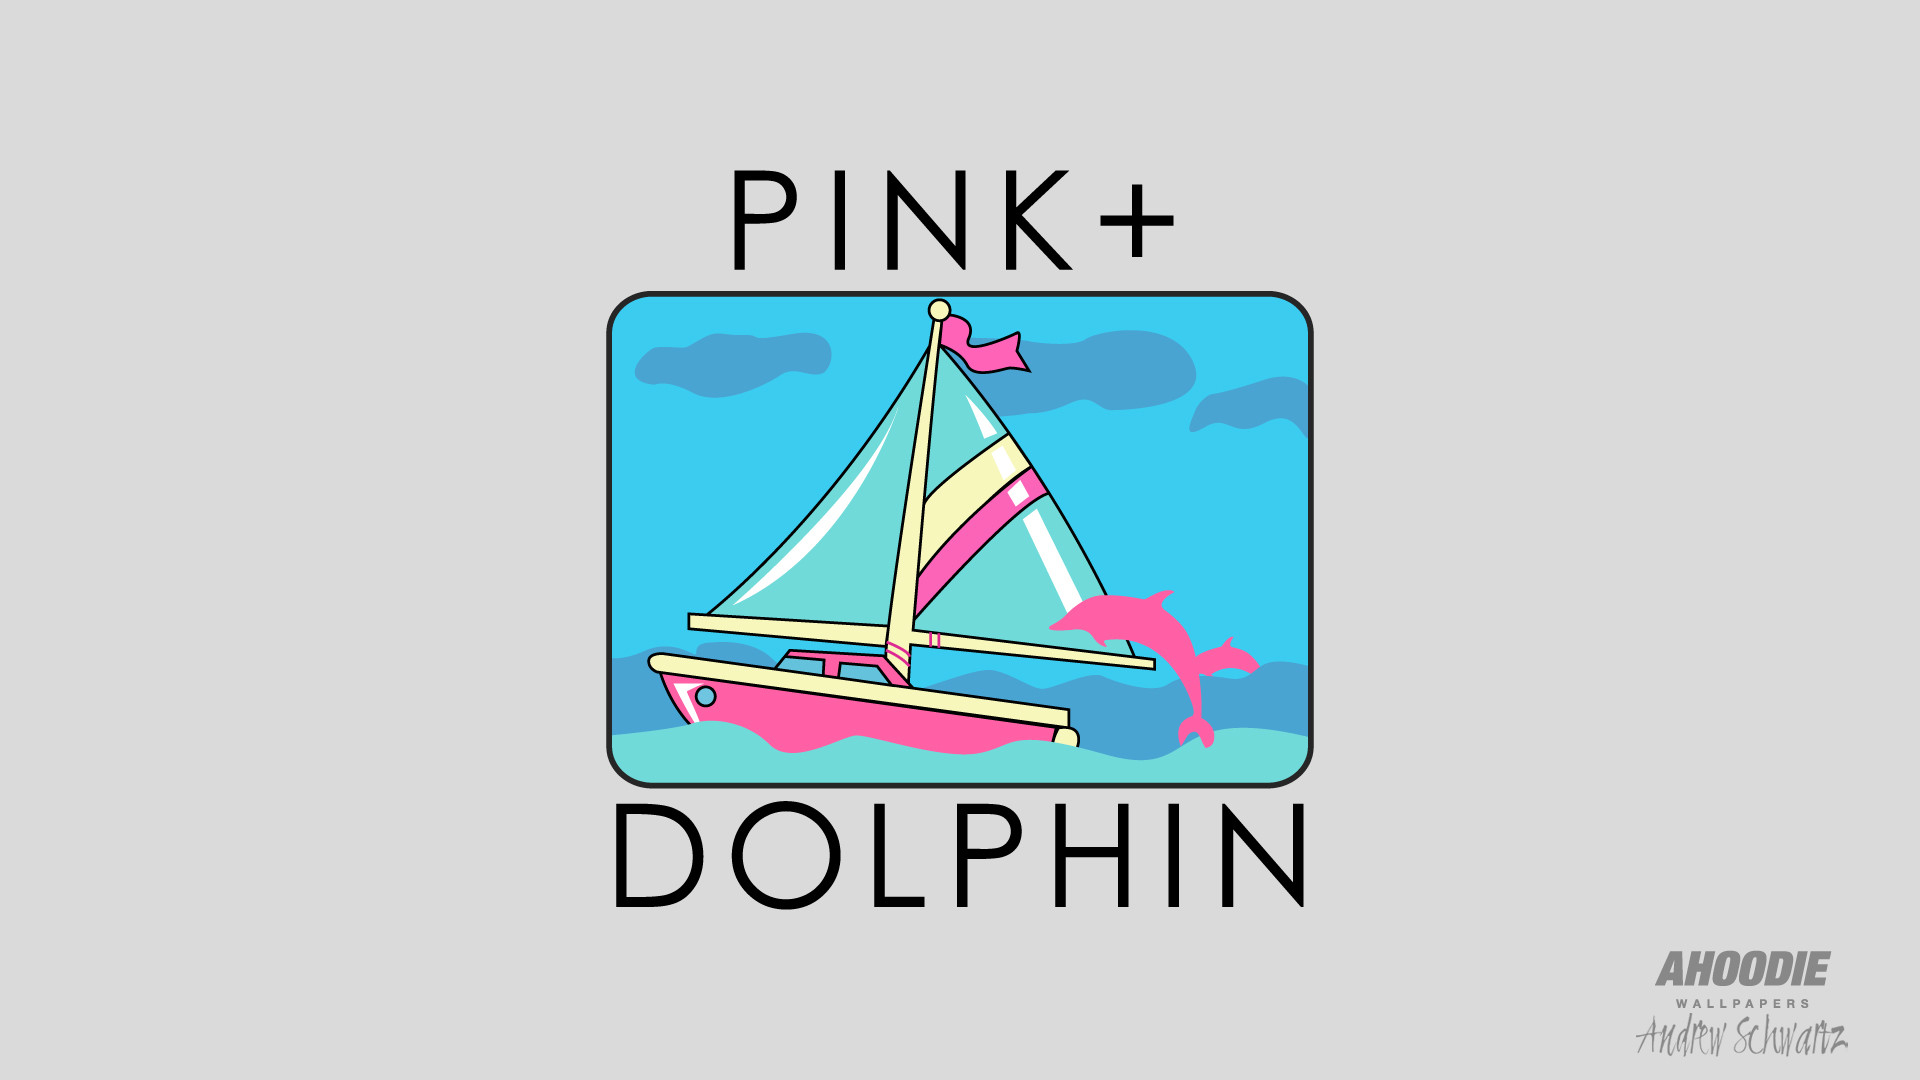 Pink Dolphin Wallpaper Pink Dolphin Brand Wallpapers